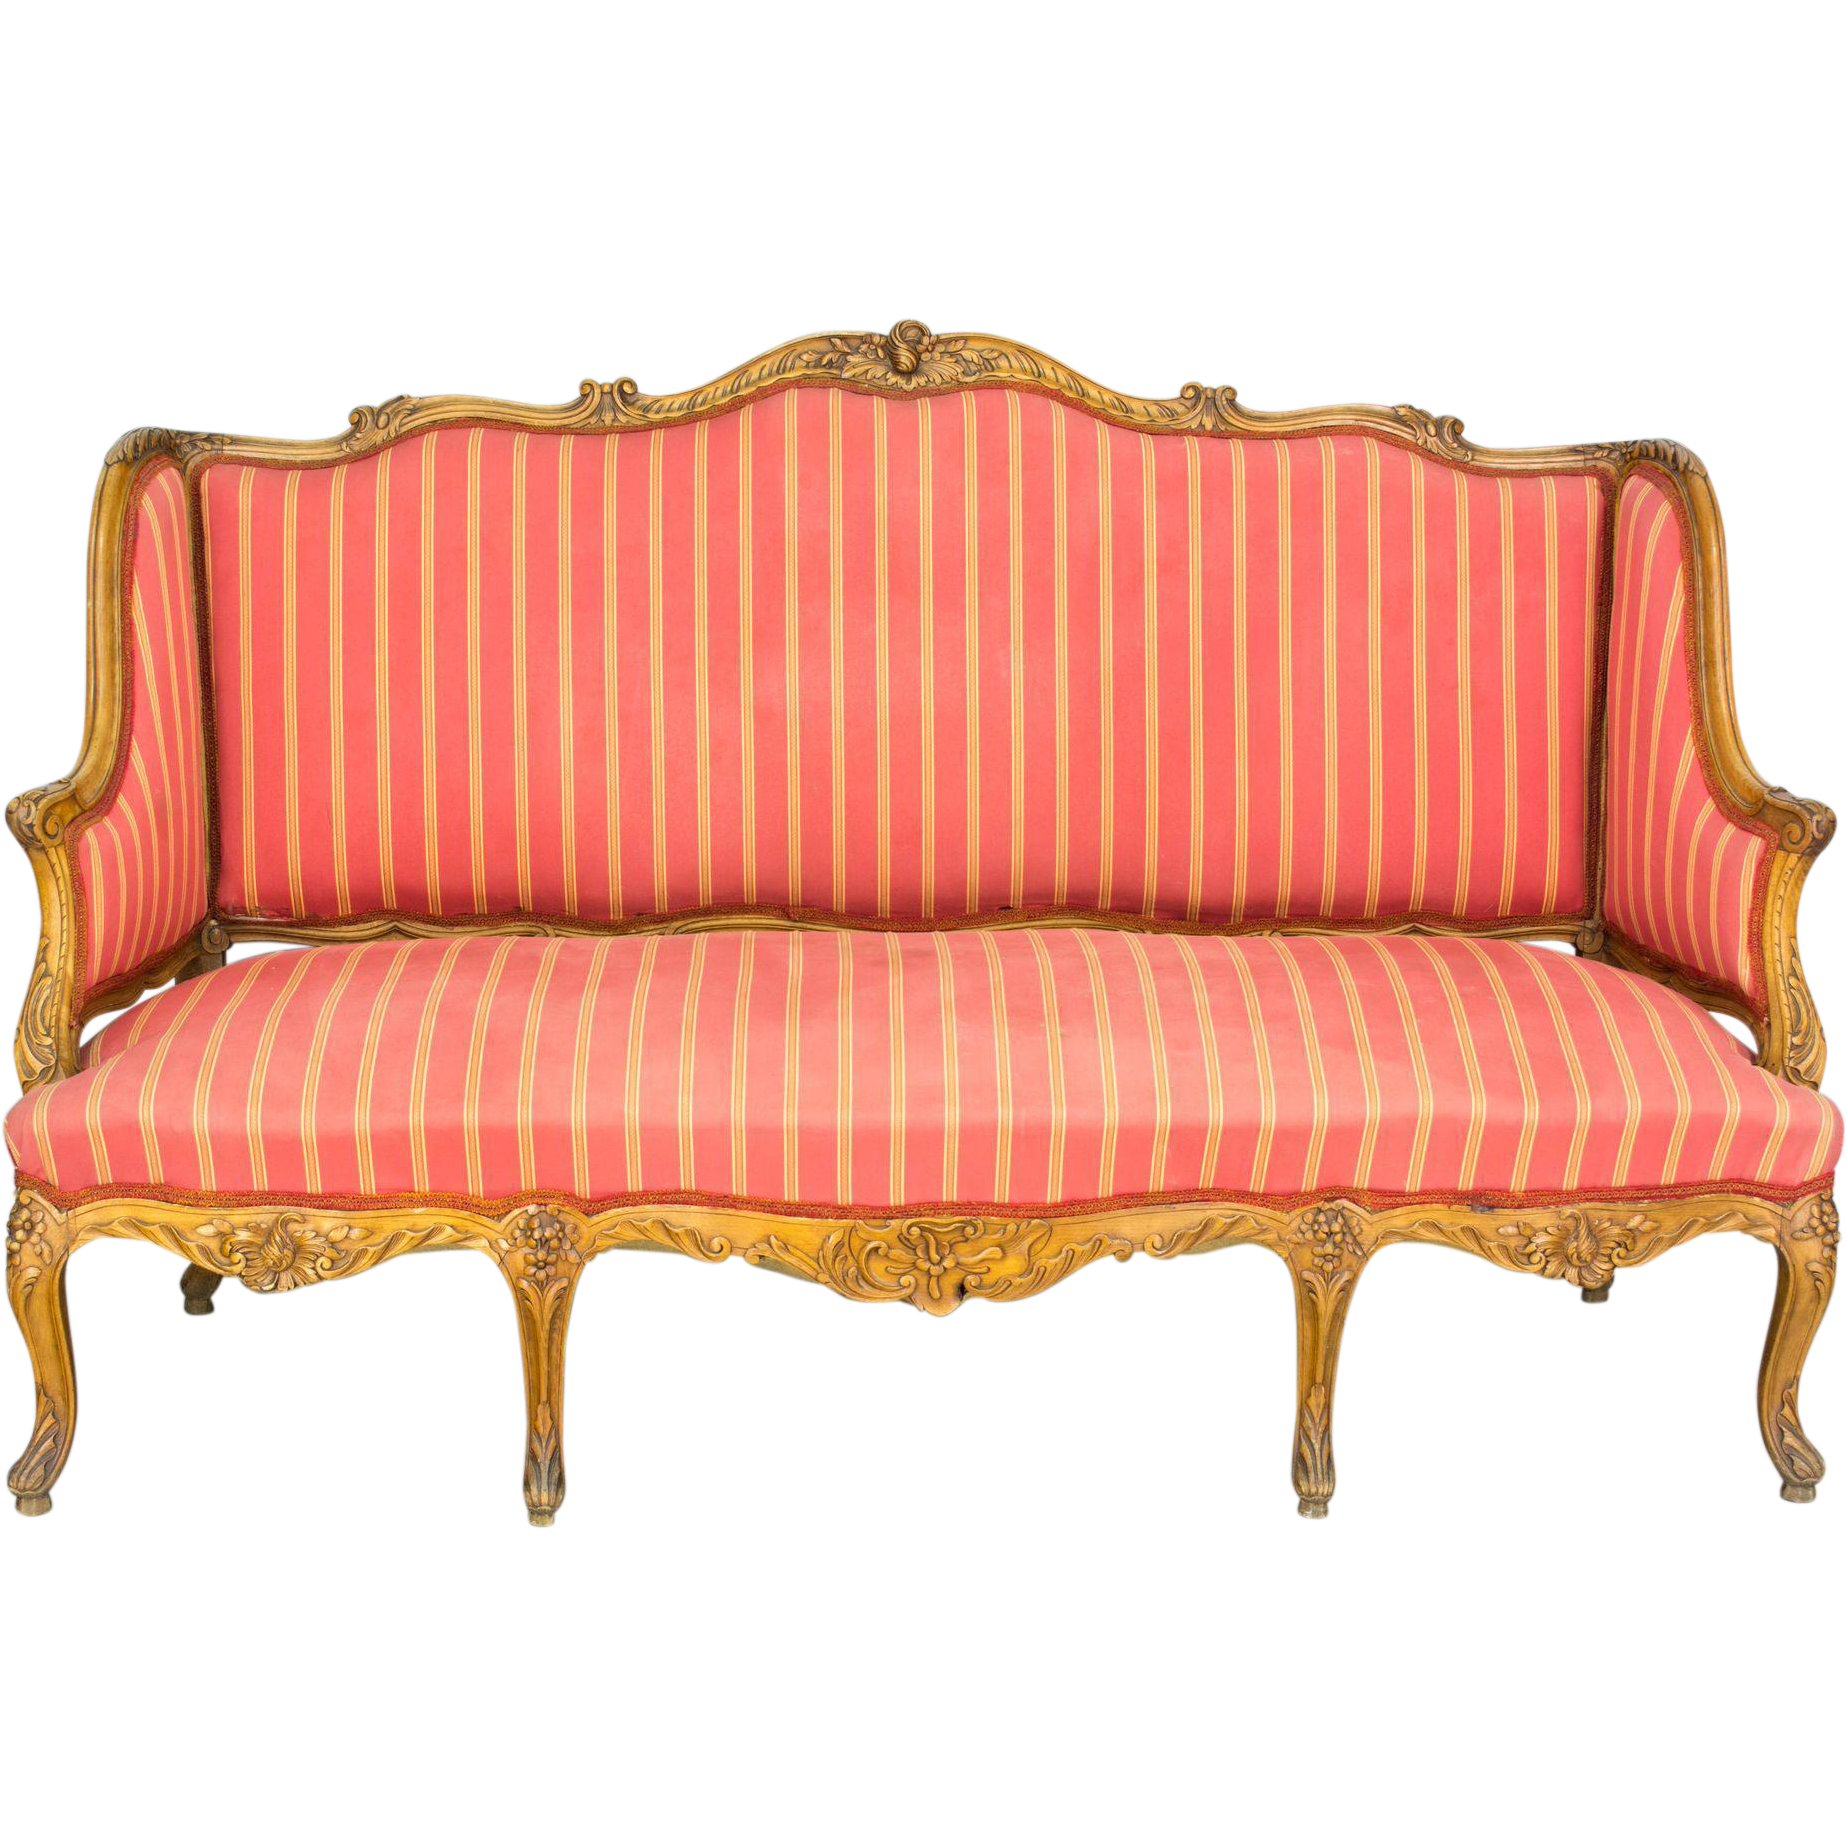 19th Century Louis XV Style Sofa or Canape from ofleury on Ruby Lane